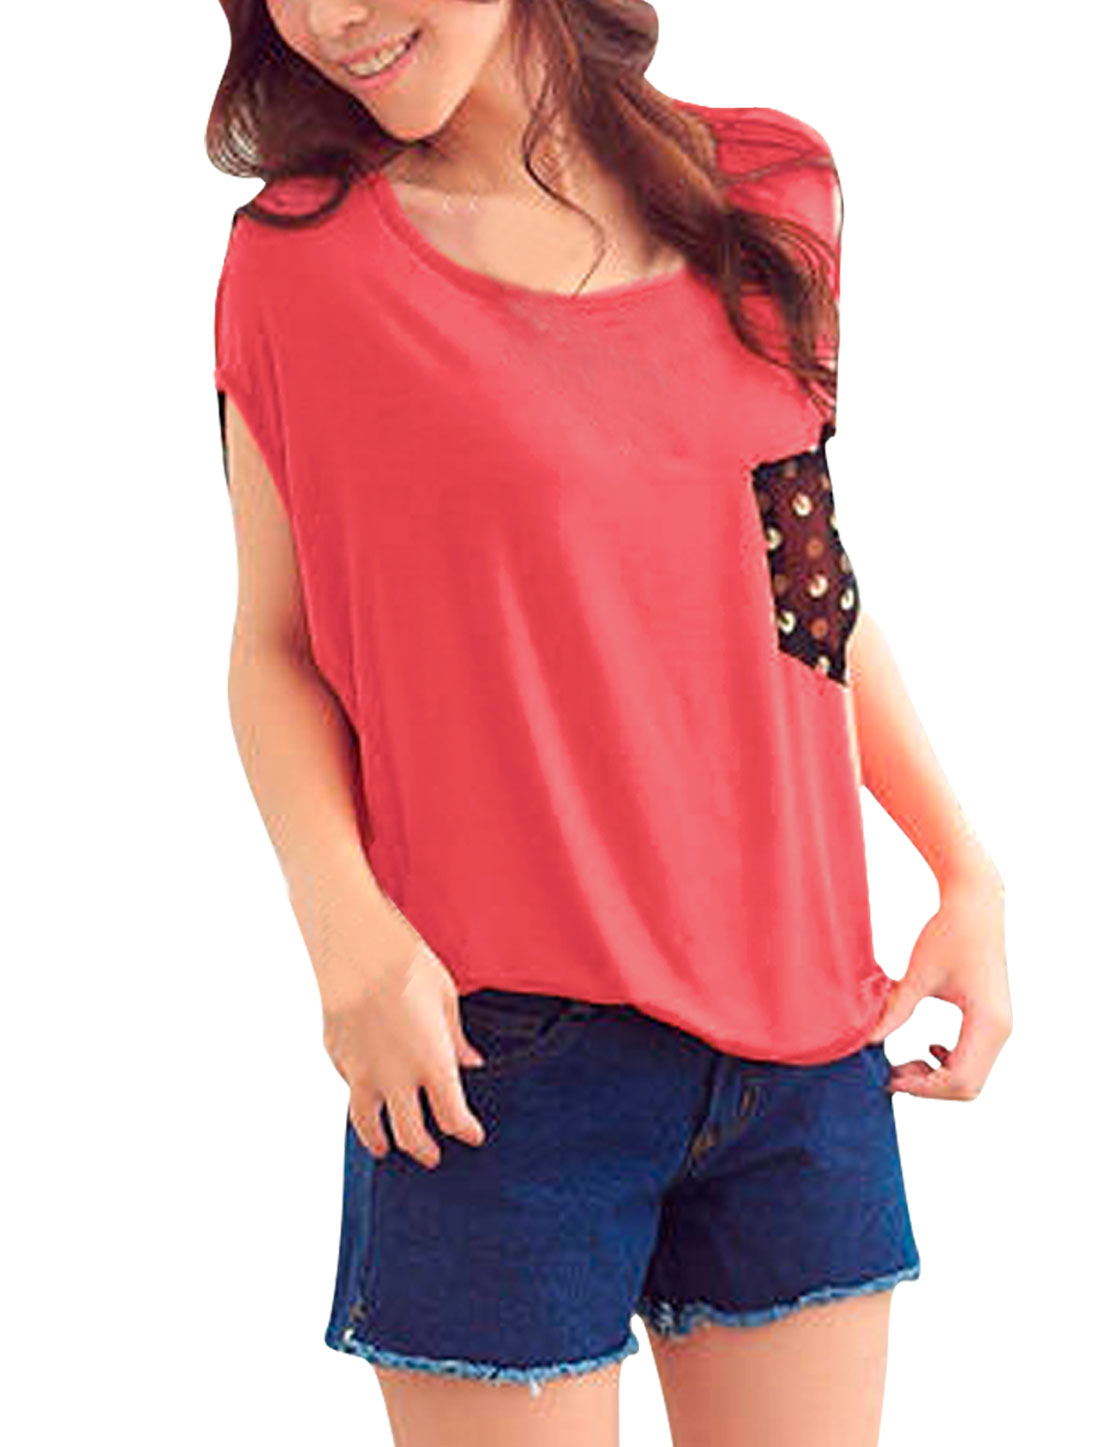 Ladies Watermelon Red Scoop Neck Stretchy Pullover Tee Shirt S